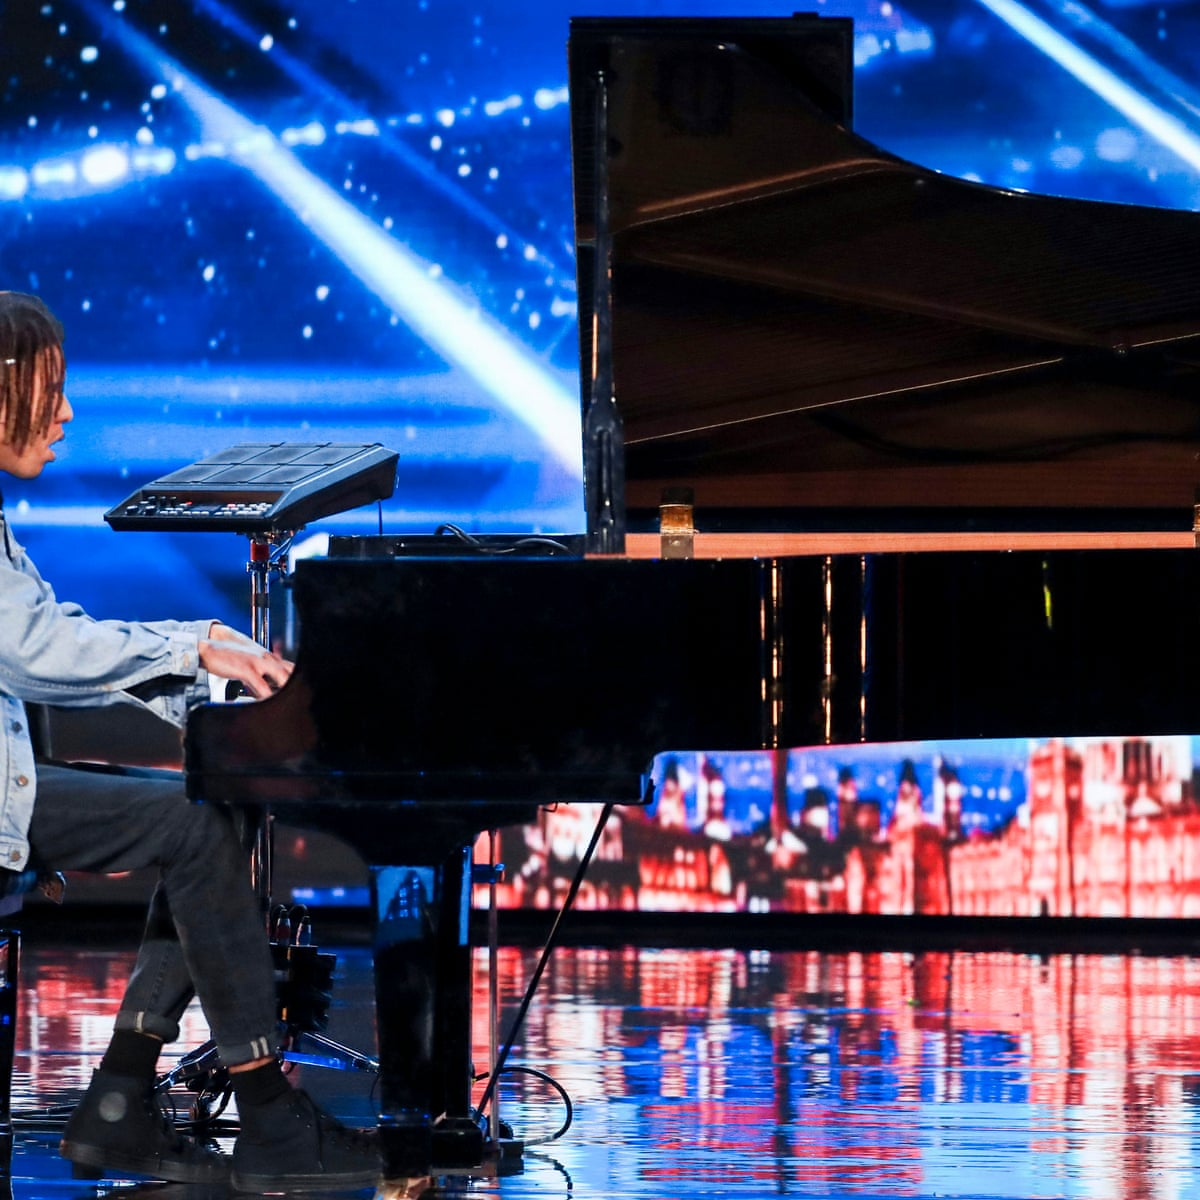 Britain S Got Talent Final Is Saturday S Most Watched Programme Britain S Got Talent The Guardian